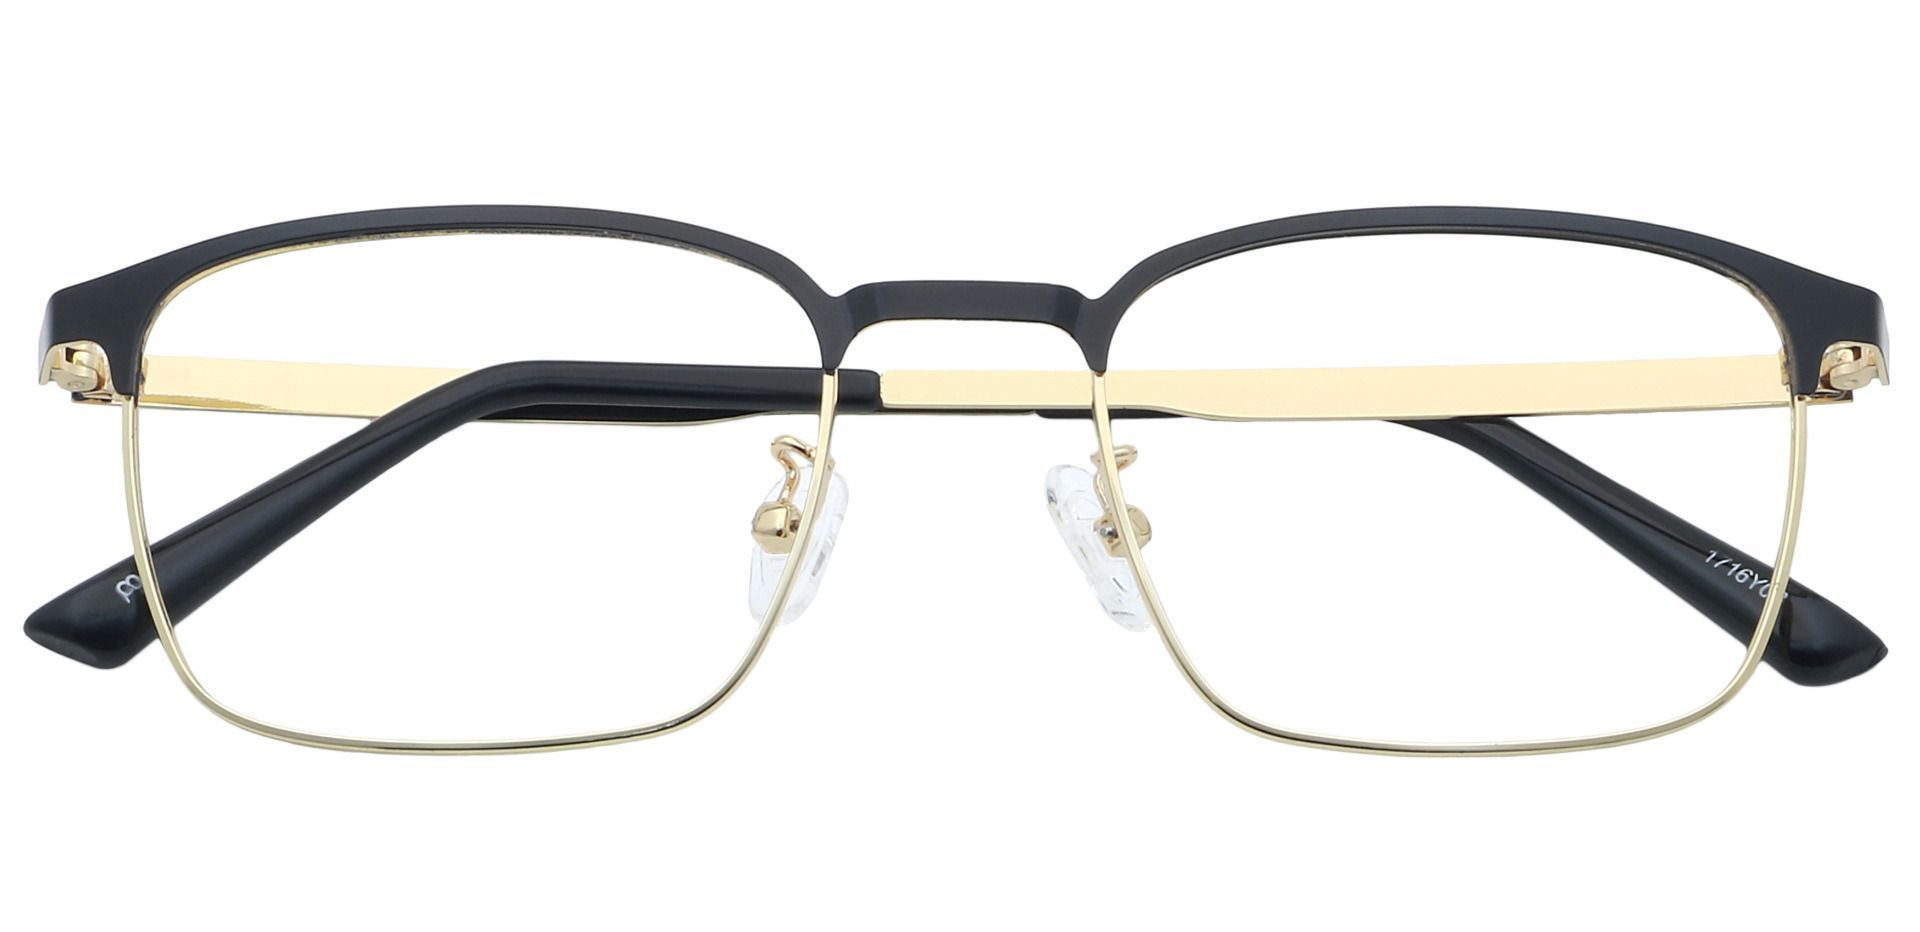 Kingston Square Blue Light Blocking Glasses - Yellow